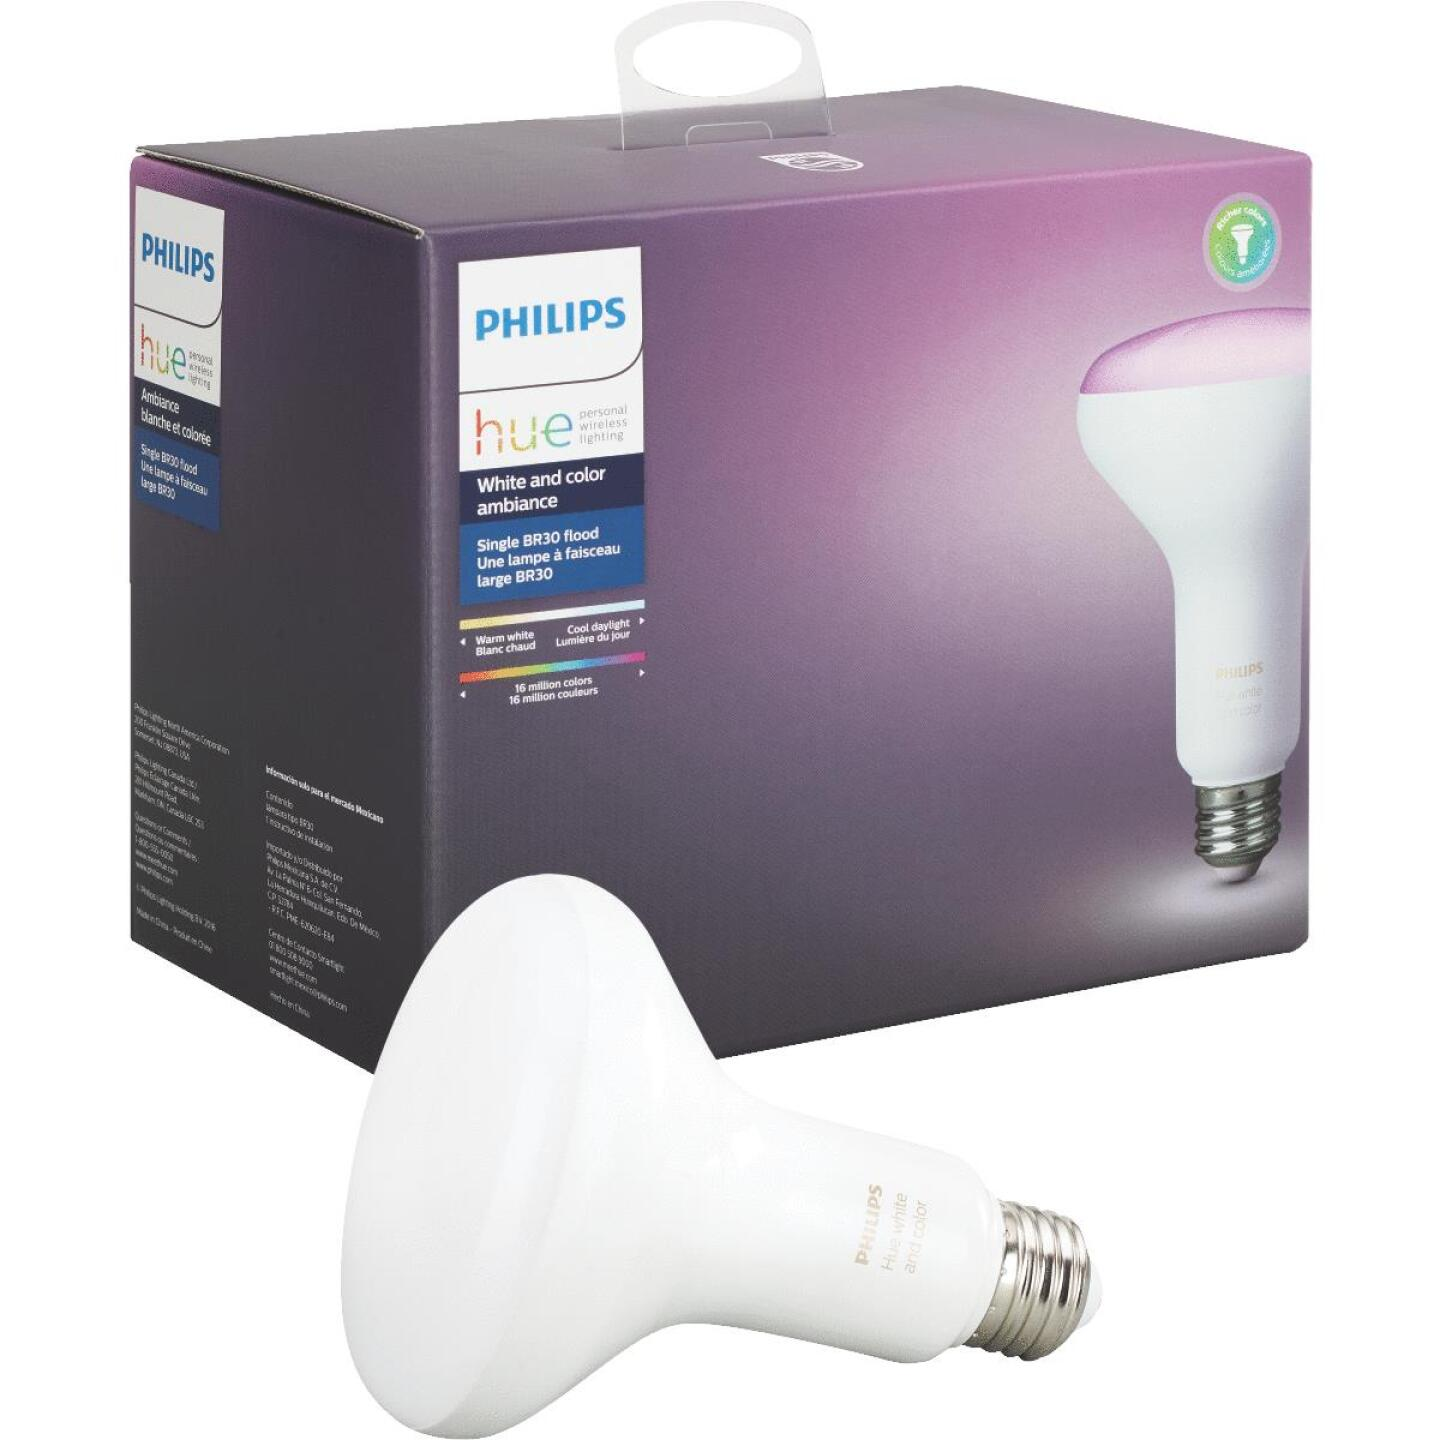 Philips Hue White & Color Ambiance 65W Equivalent BR30 Medium Base LED Floodlight Light Bulb Image 1